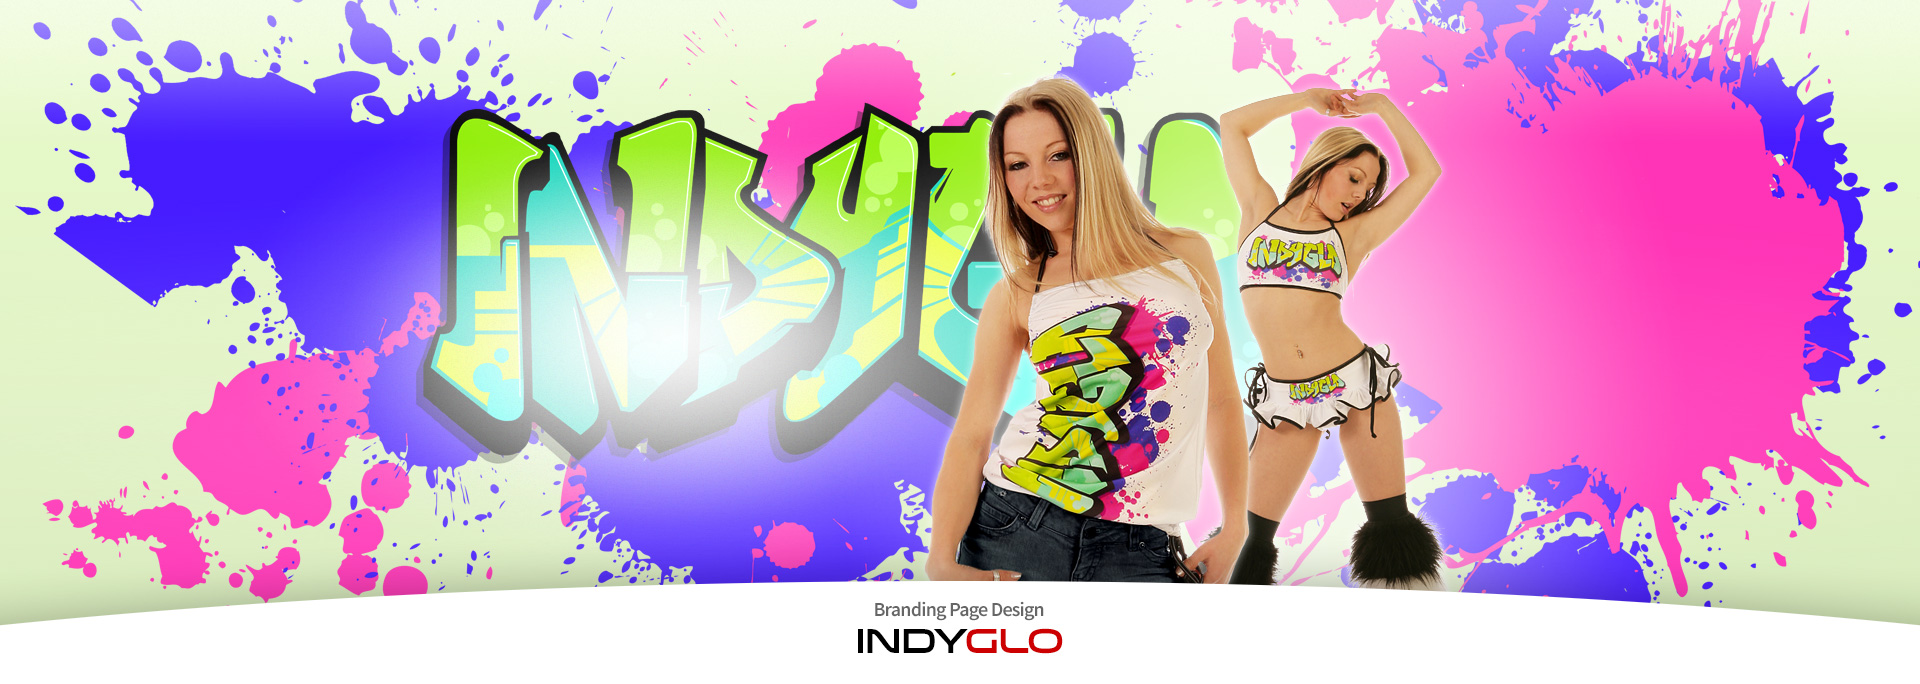 Indyglo Brand Page Backdrop - Graffiti